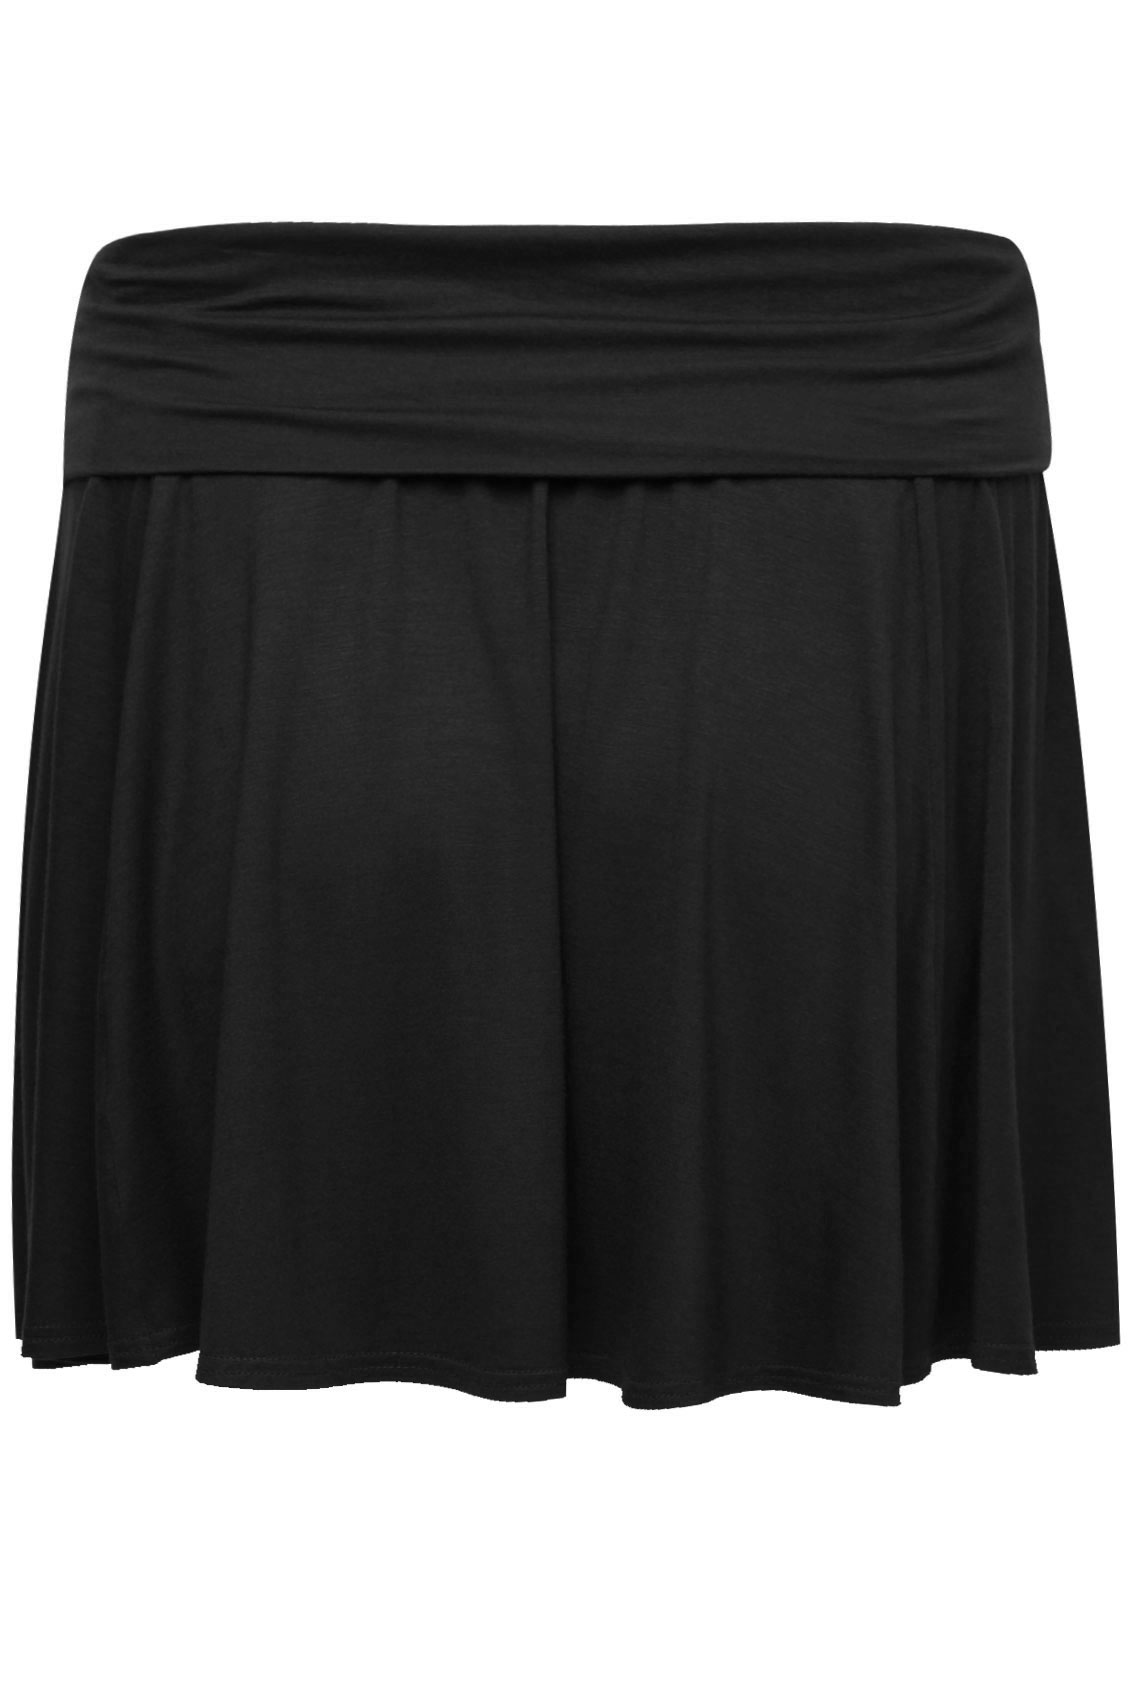 Women's Short and Mini Skirts